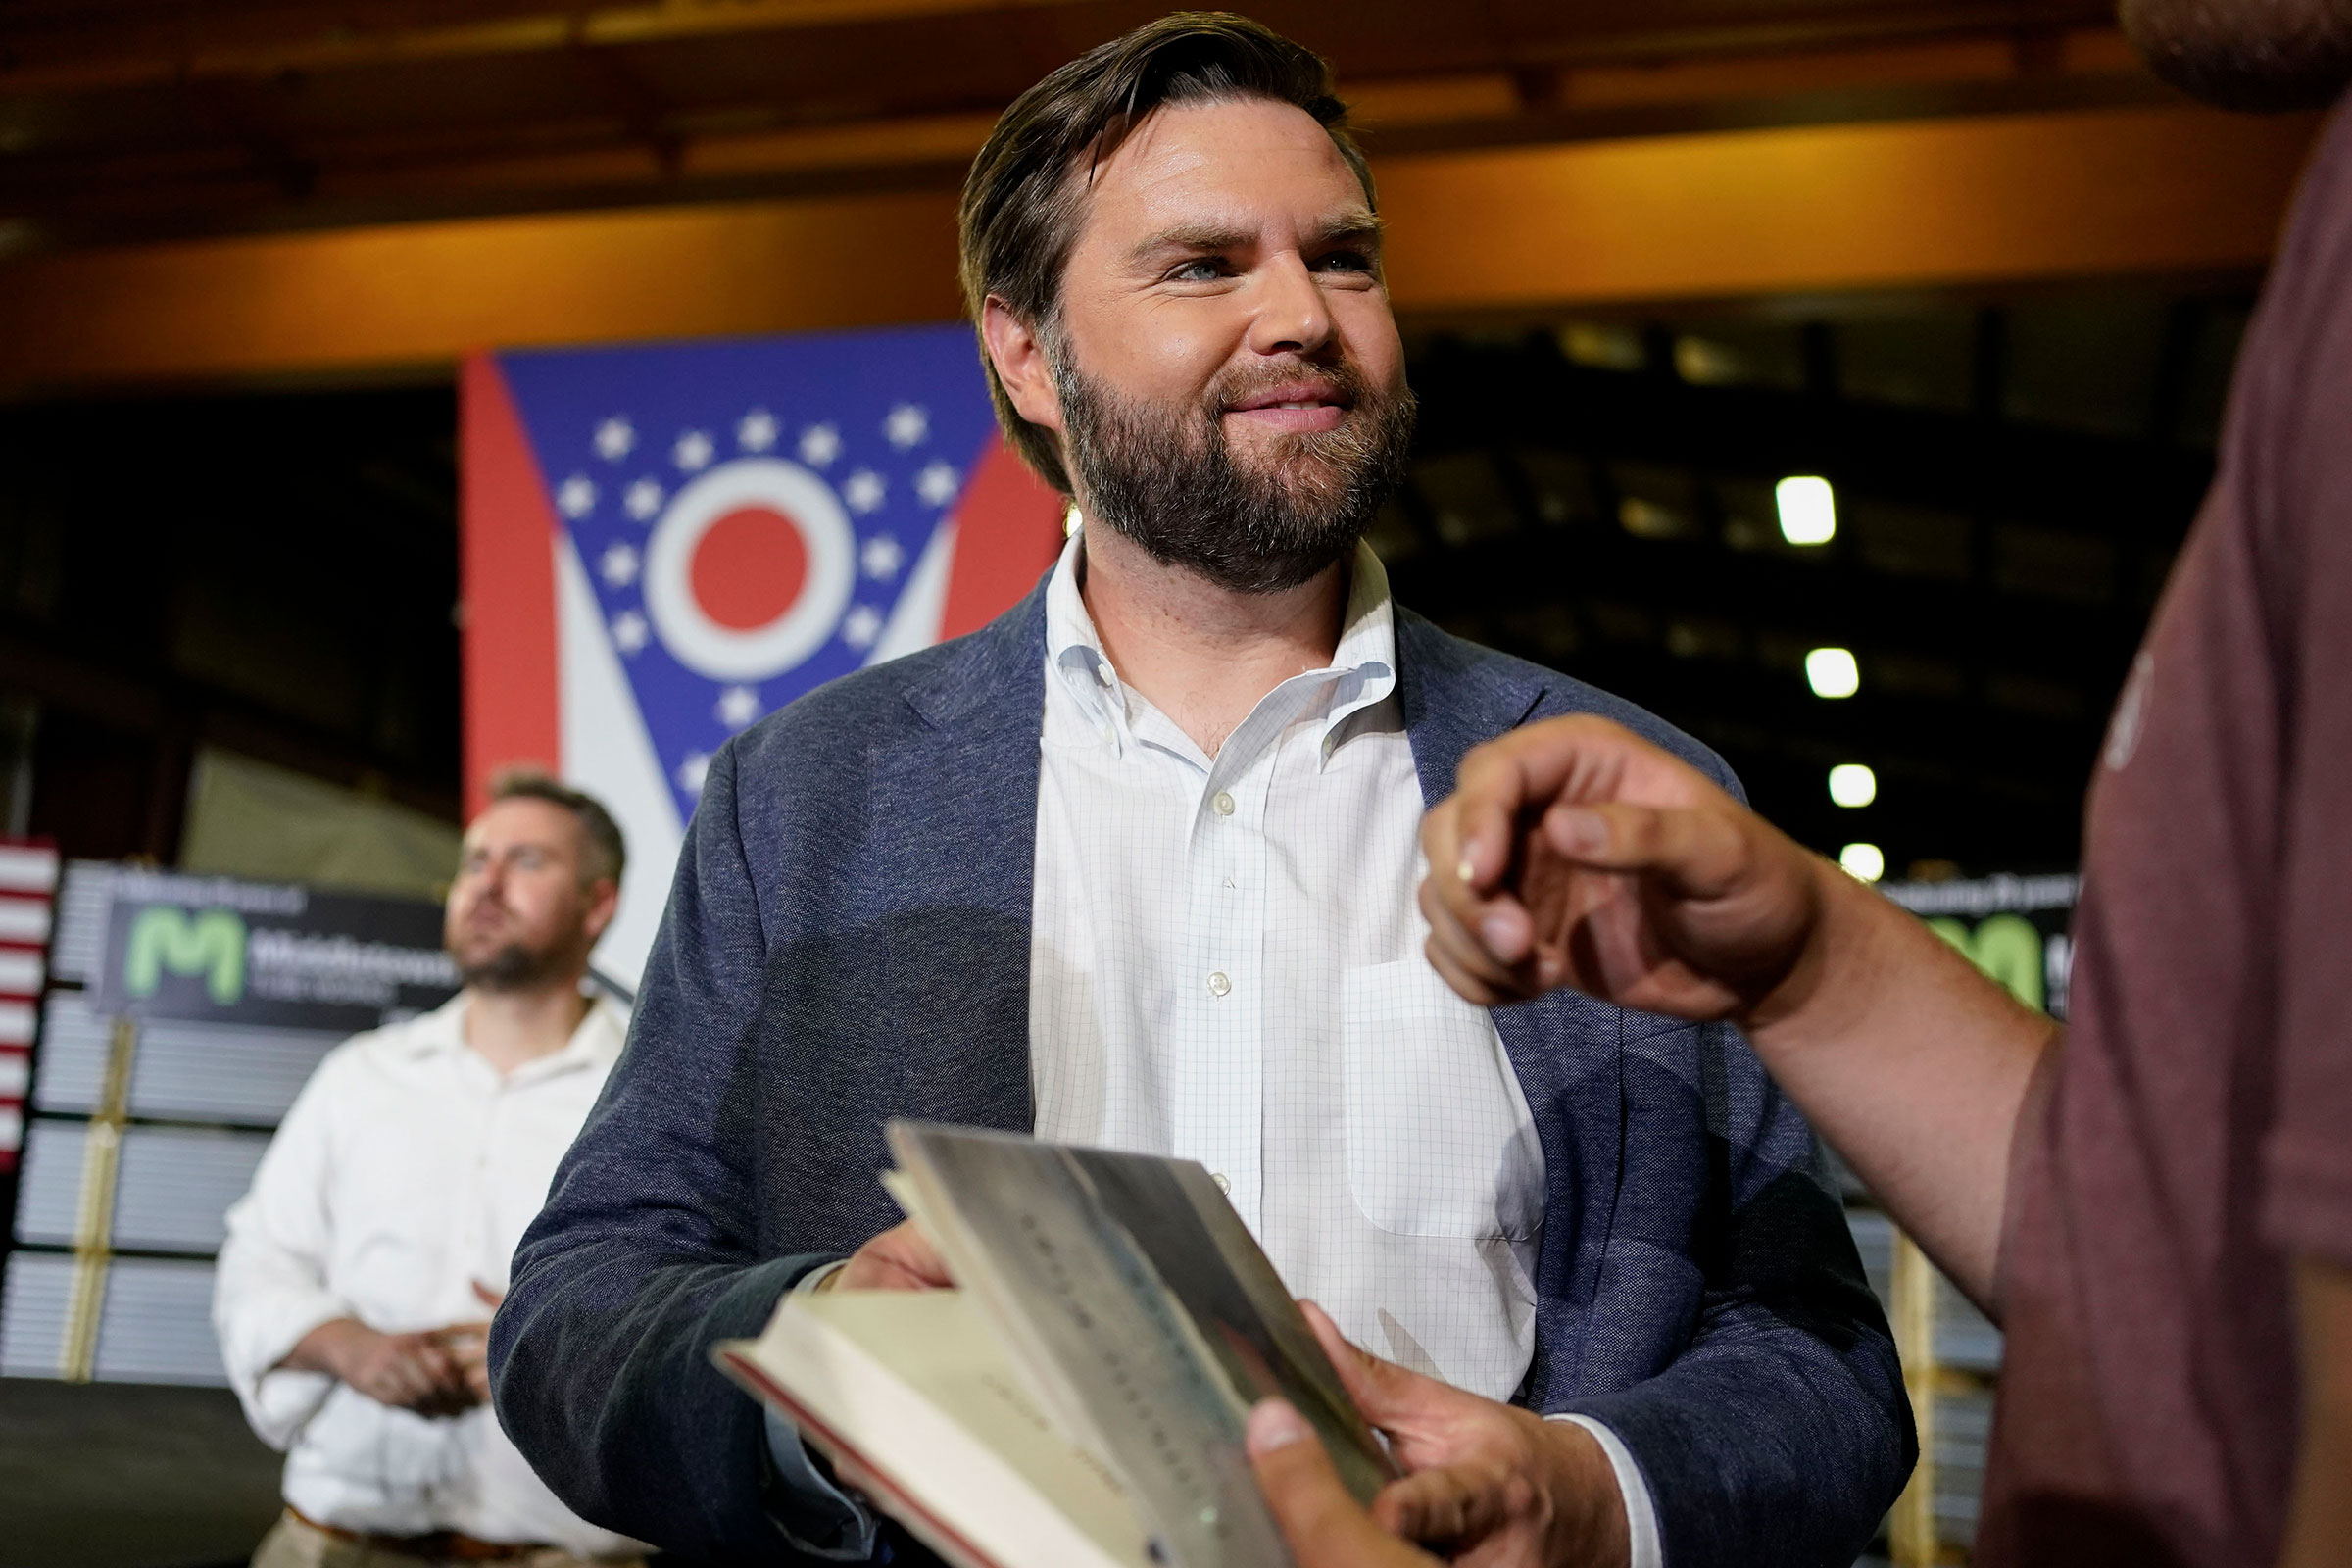 JD Vance, the venture capitalist and author of  Hillbilly Elegy,  speaks with supporters after a rally in Middletown, Ohio, on July 1, 2021.